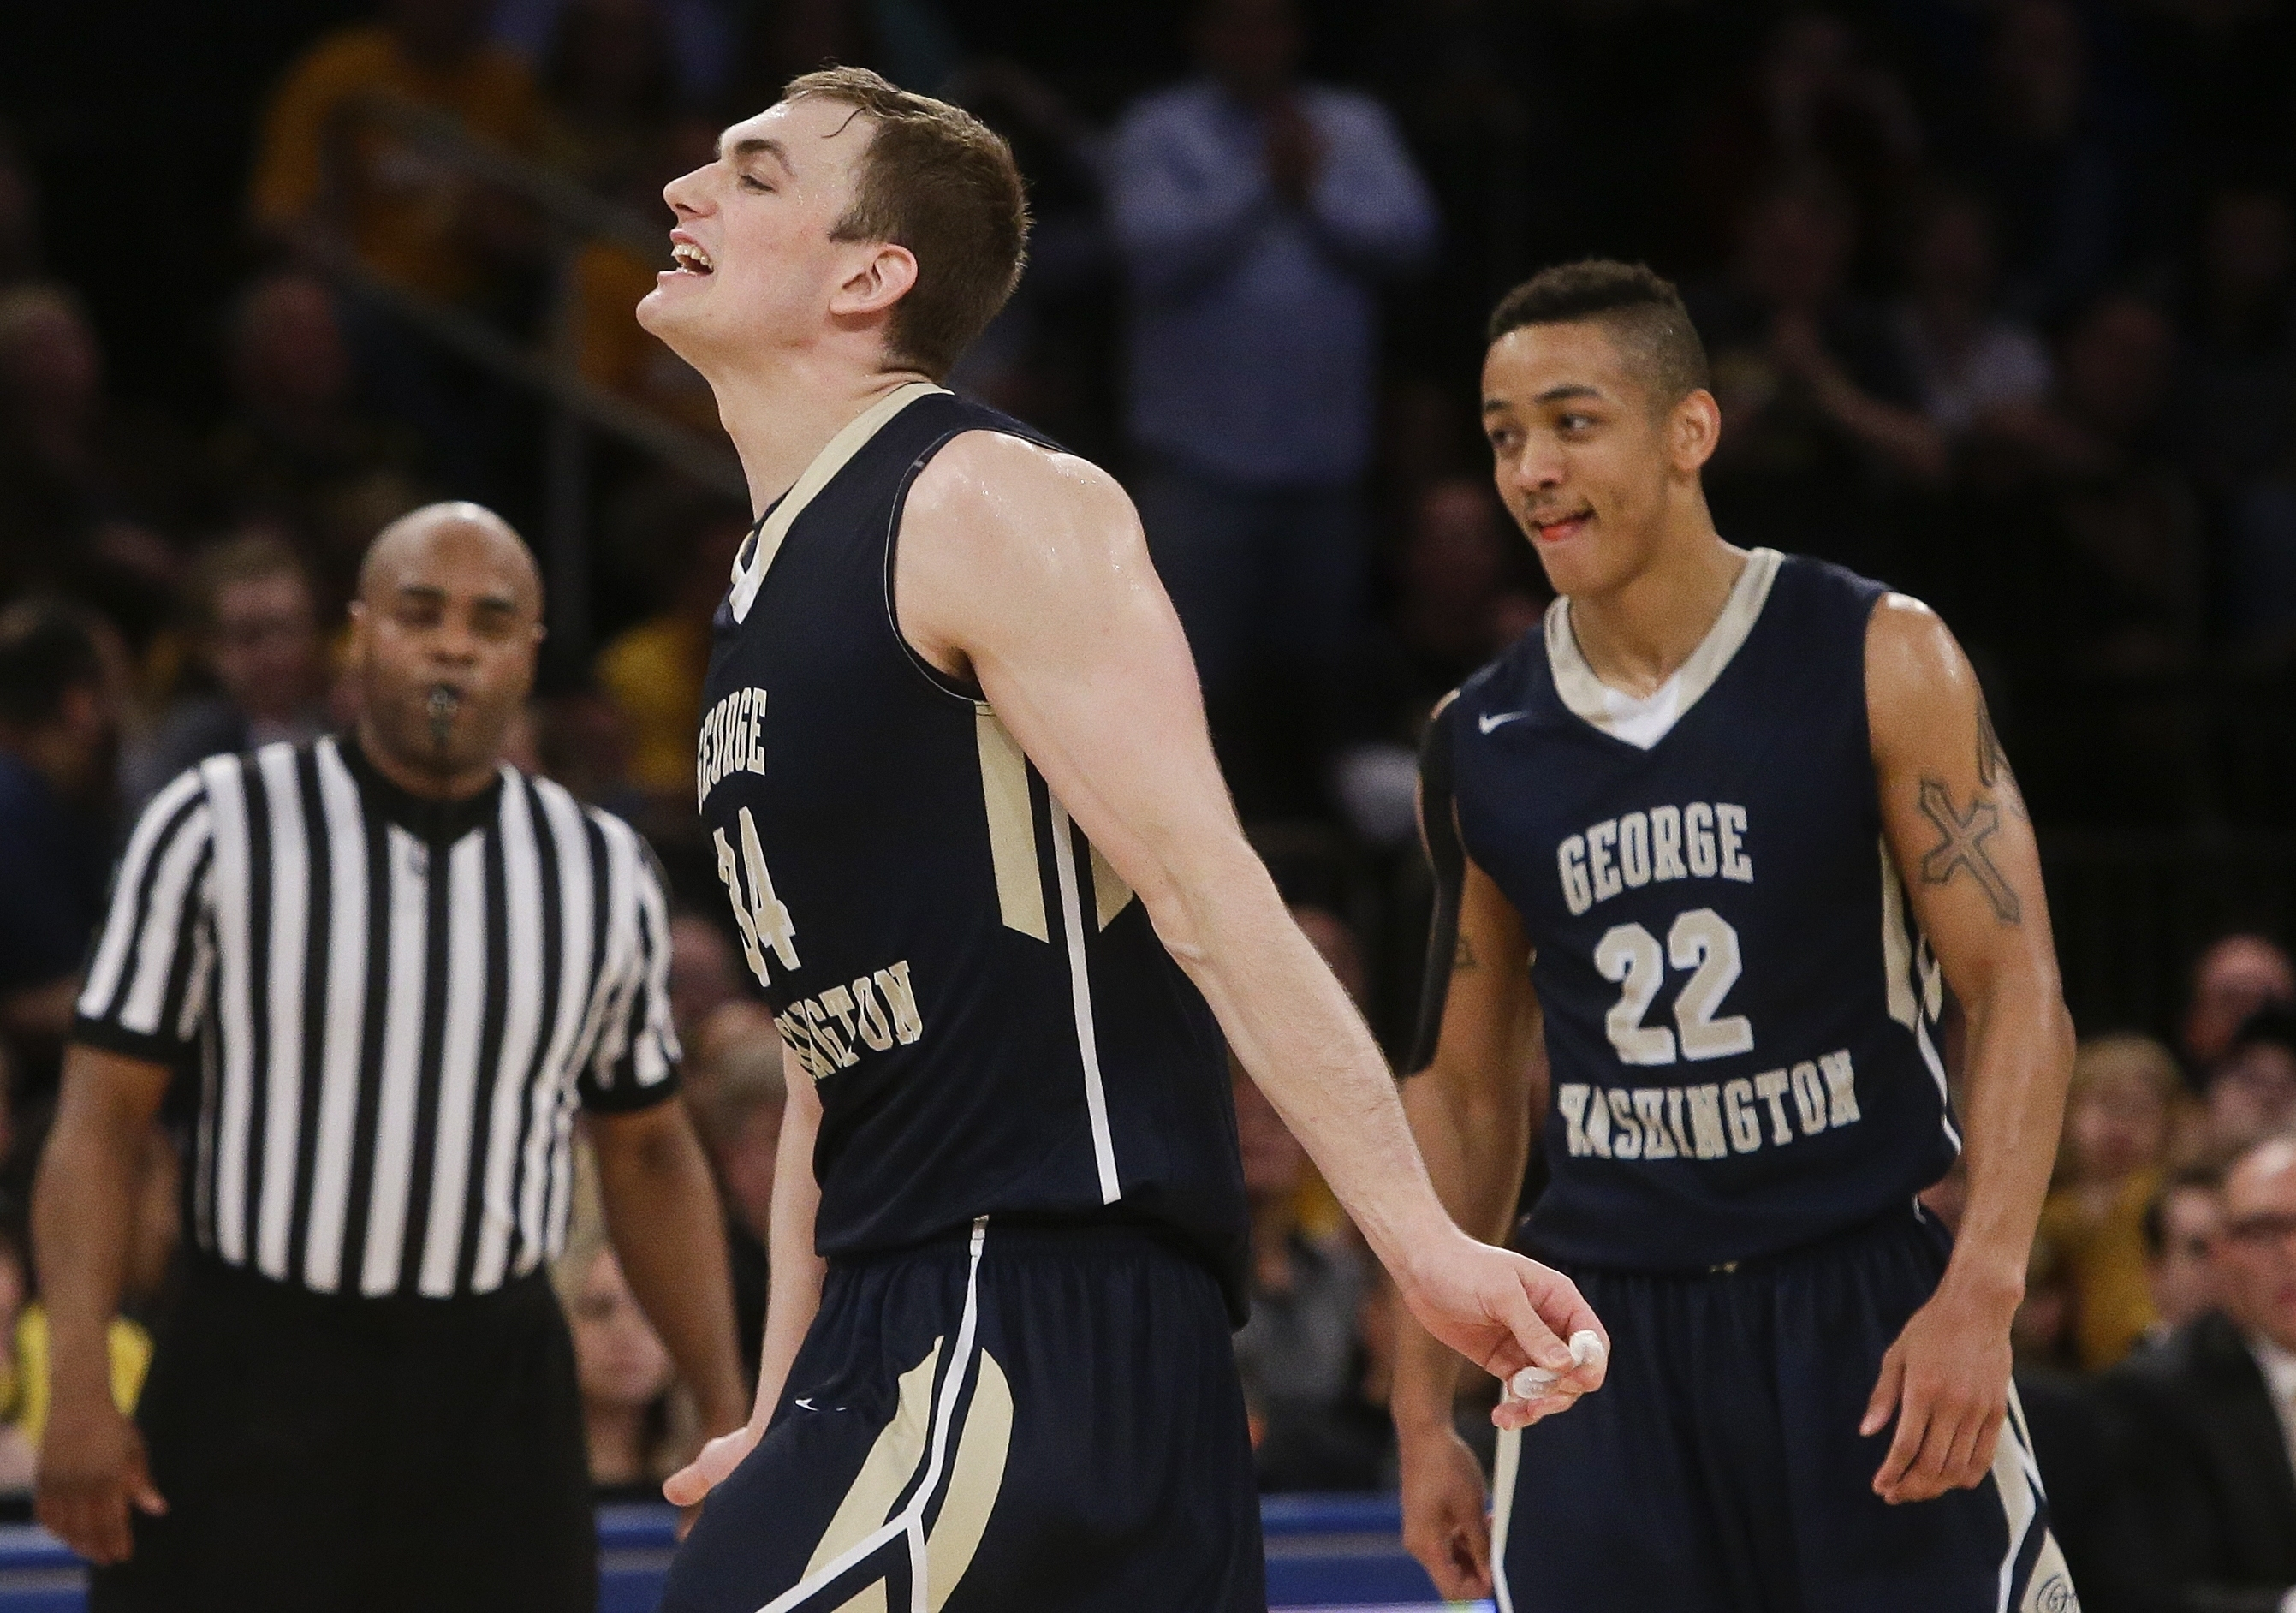 George Washington's Tyler Cavanaugh (34) and Joe McDonald (22) celebrate during the second half of an NCAA college basketball game against Valparaiso in the final of the NIT on Thursday, March 31, 2016, in New York. George Washington won 76-60. (AP Photo/